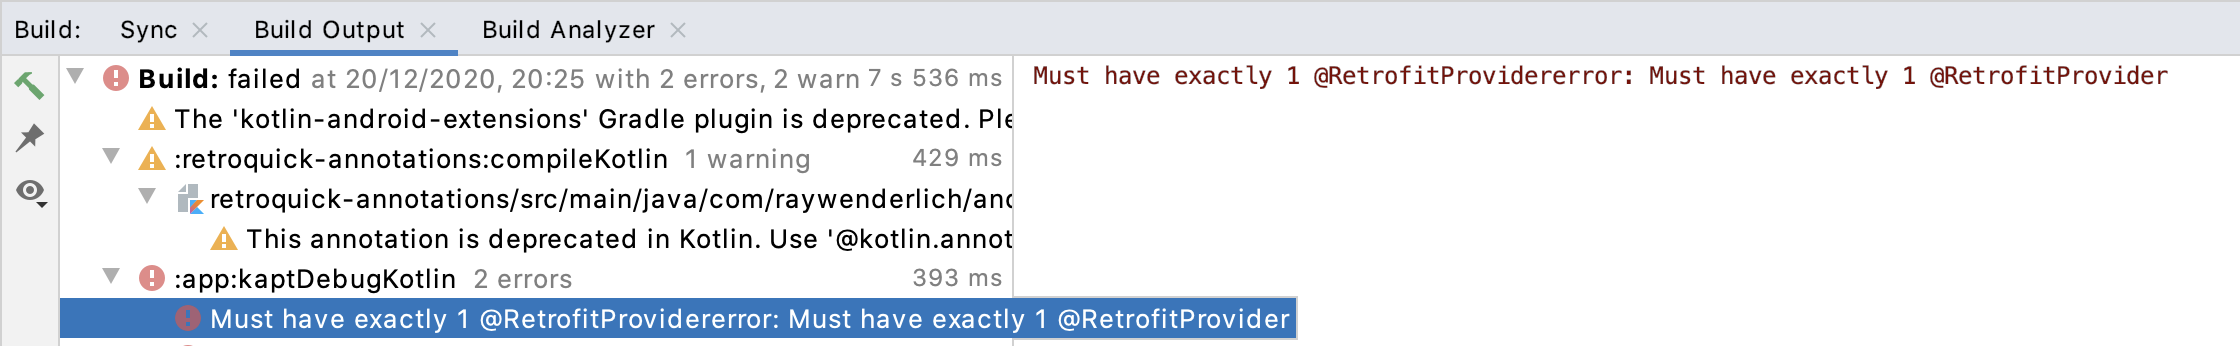 The Build output window with the error: Must have exactly 1 @RetrofitProvider